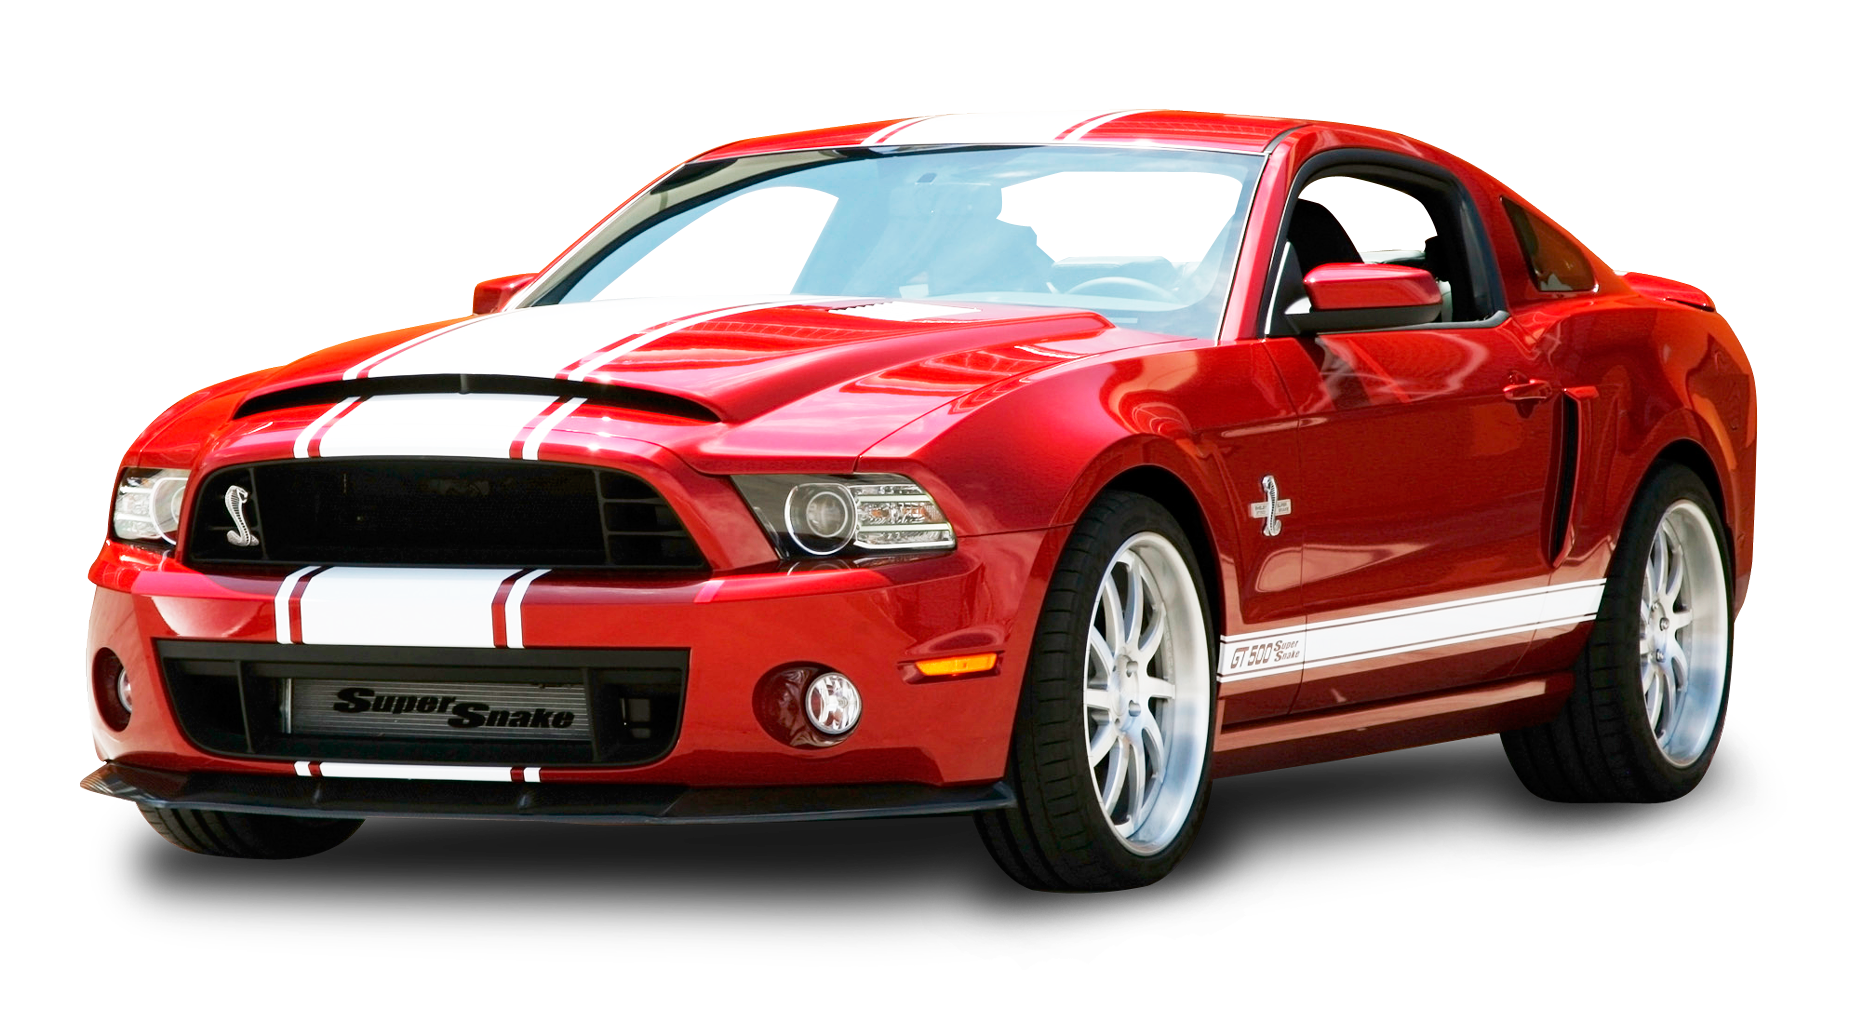 Red Ford Mustang Shelby Gt500 Snake Car Png Image Mustang Shelby Ford Mustang Shelby Gt500 Shelby Gt500